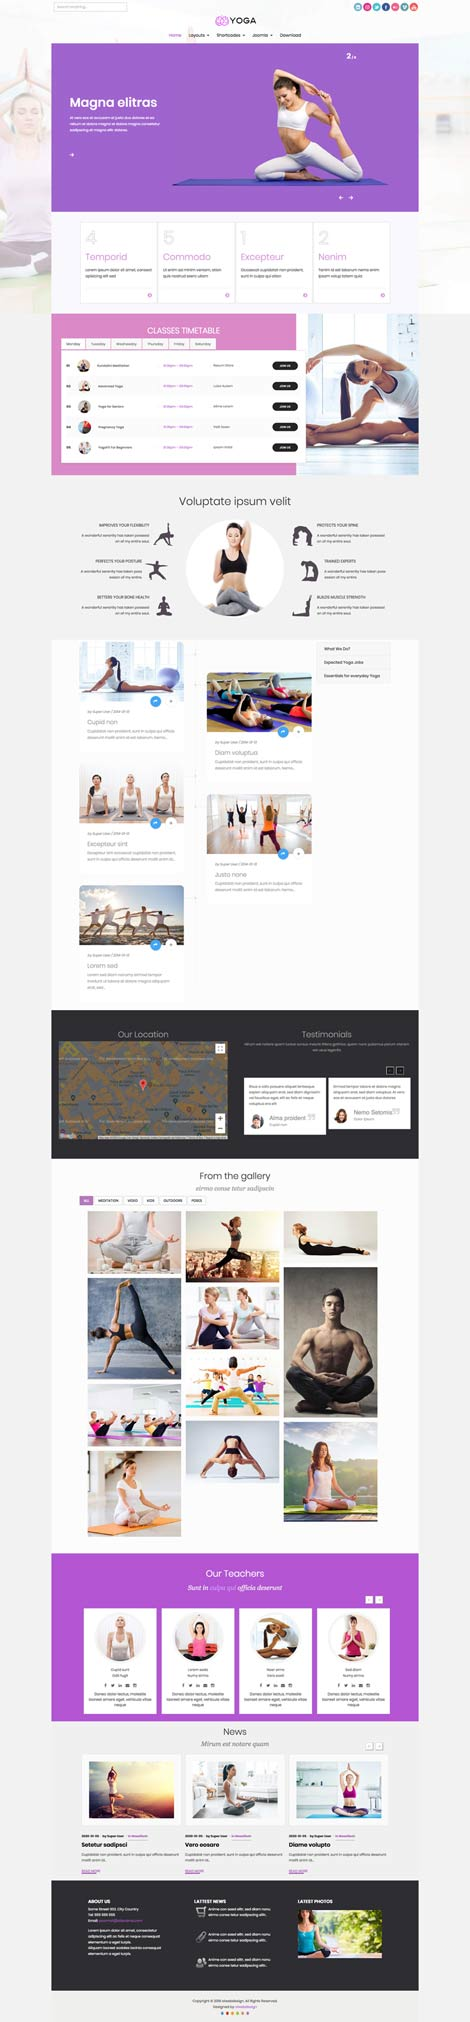 Ol Yoga - Joomla template for Yoga Studios